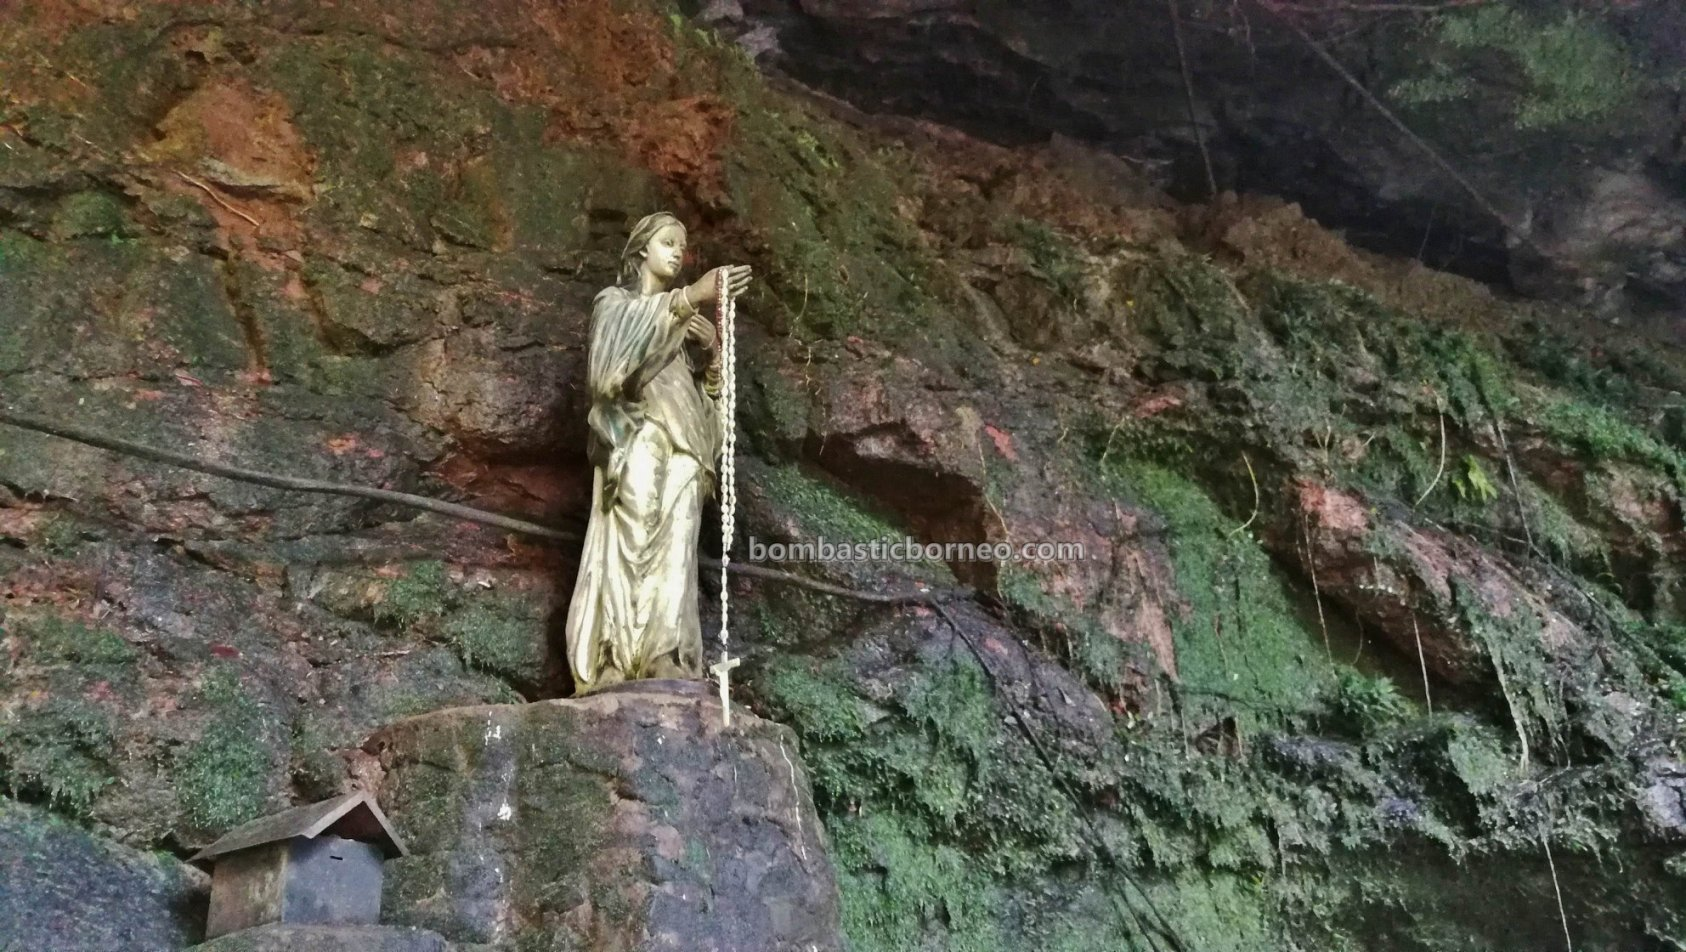 Virgin Mary Grotto, air terjun, Riam Macan, catholic, katolik, backpackers, Borneo, Kalimantan Barat, Tourism, tourist attraction, travel guide, 印尼西加里曼丹, 上侯旅游景点,